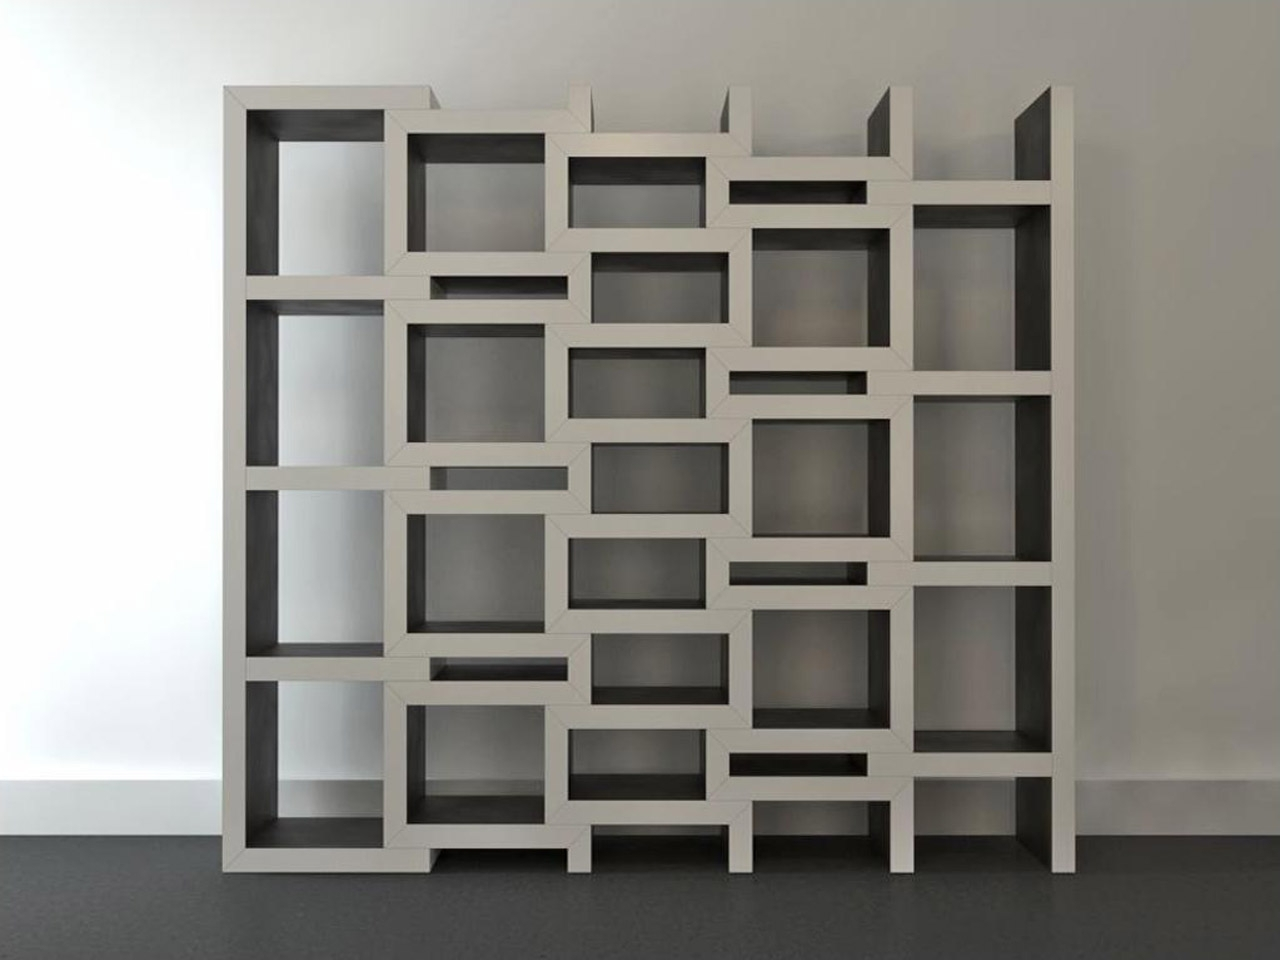 Design A Bookcases Pertaining To Recent Bookcases Ideas: 10 Of The Most Creative Bookshelves Designs (View 3 of 15)